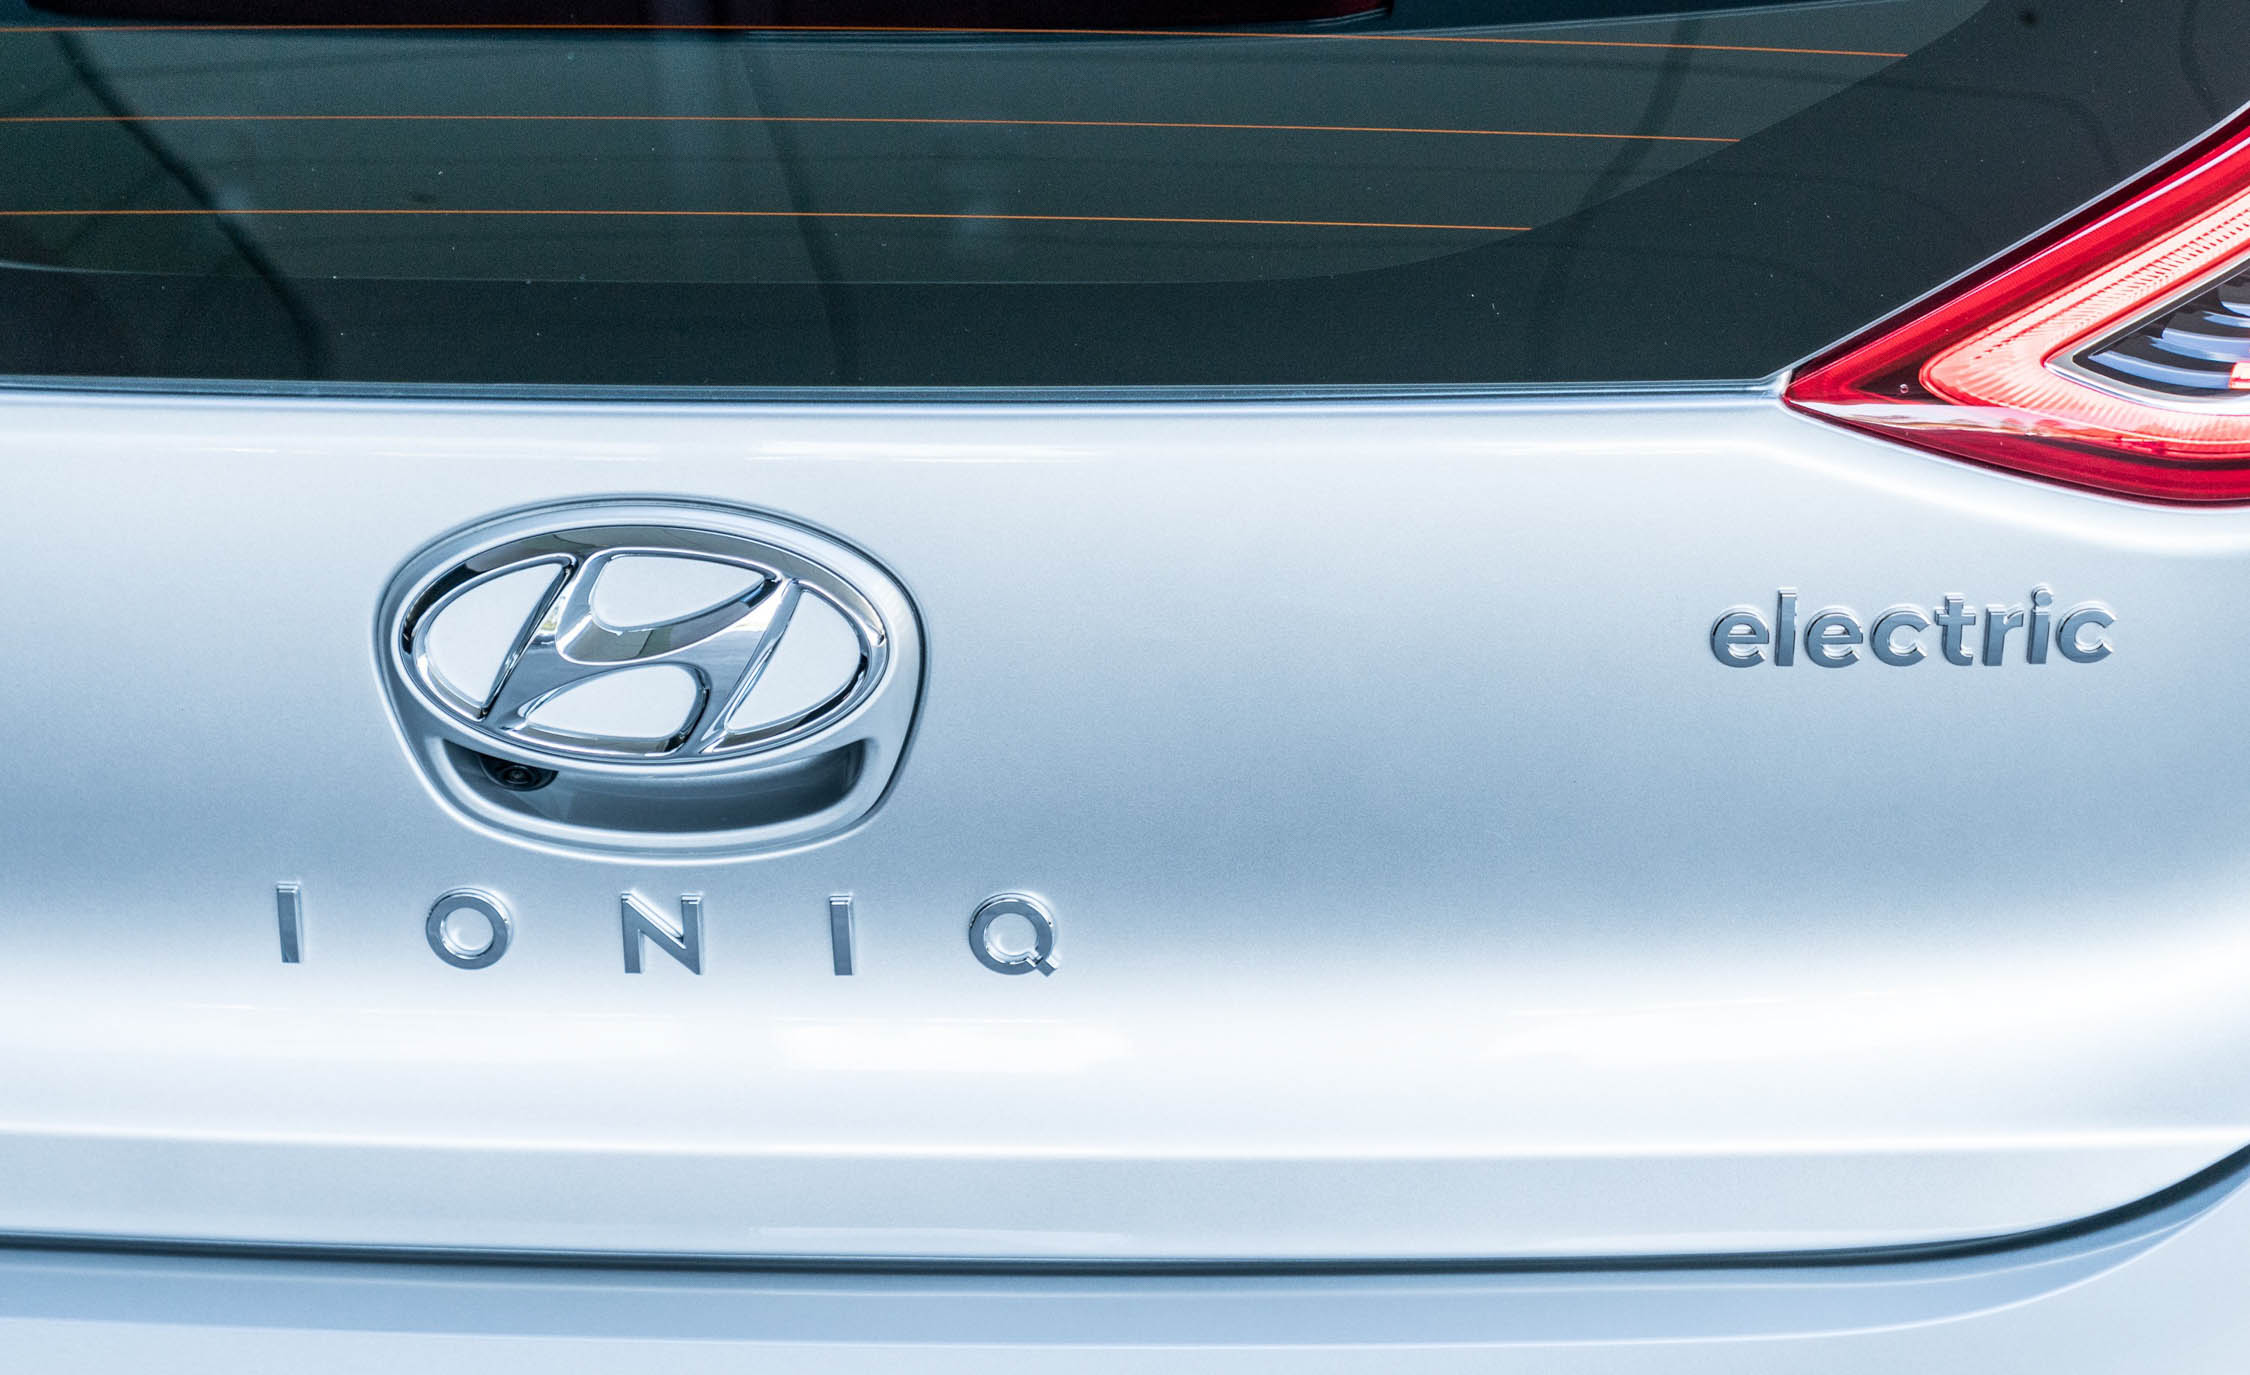 2017 Hyundai Ioniq Electric Exterior View Rear Badge (Photo 14 of 67)